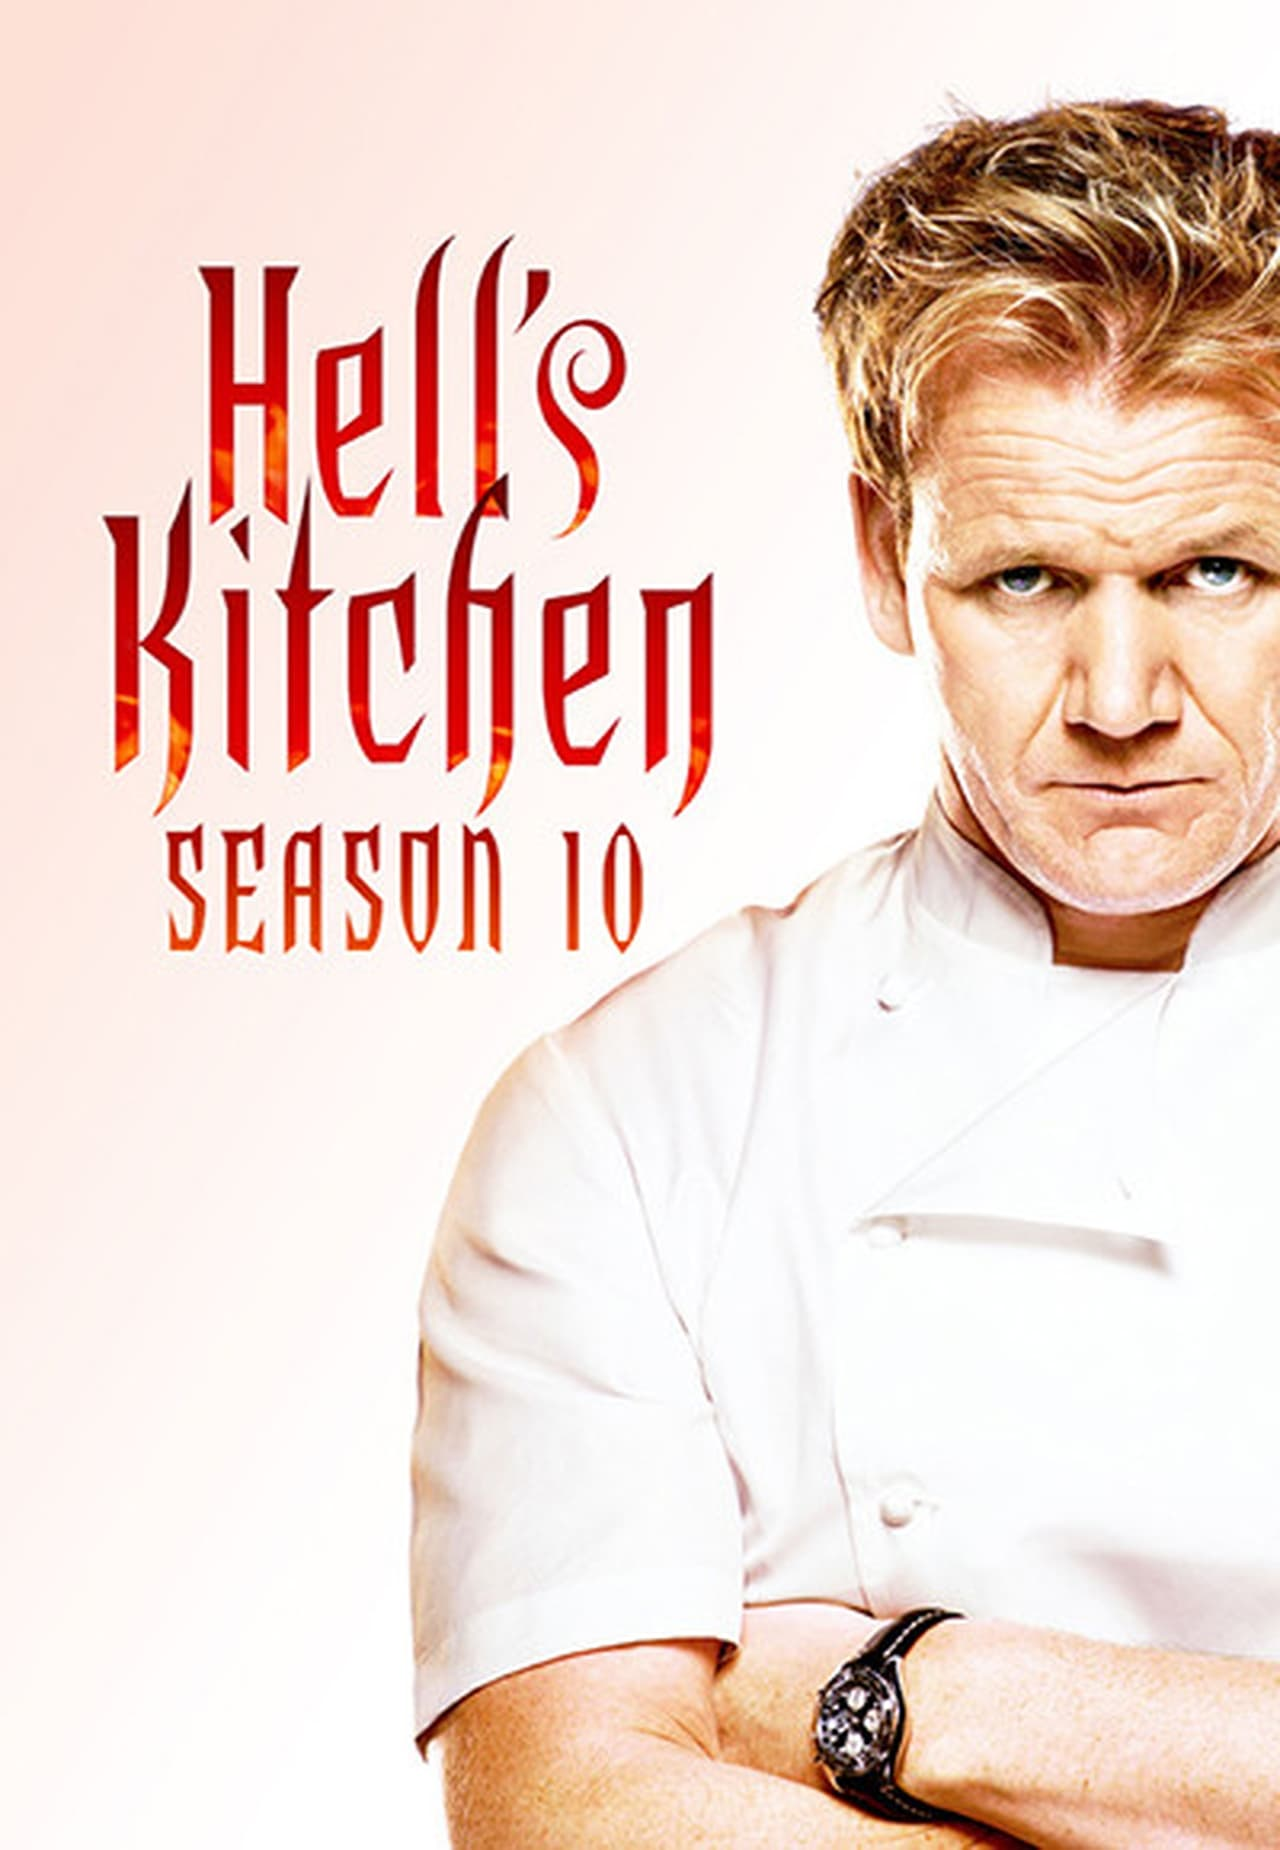 Putlocker Hell's Kitchen Season 10 (2012)